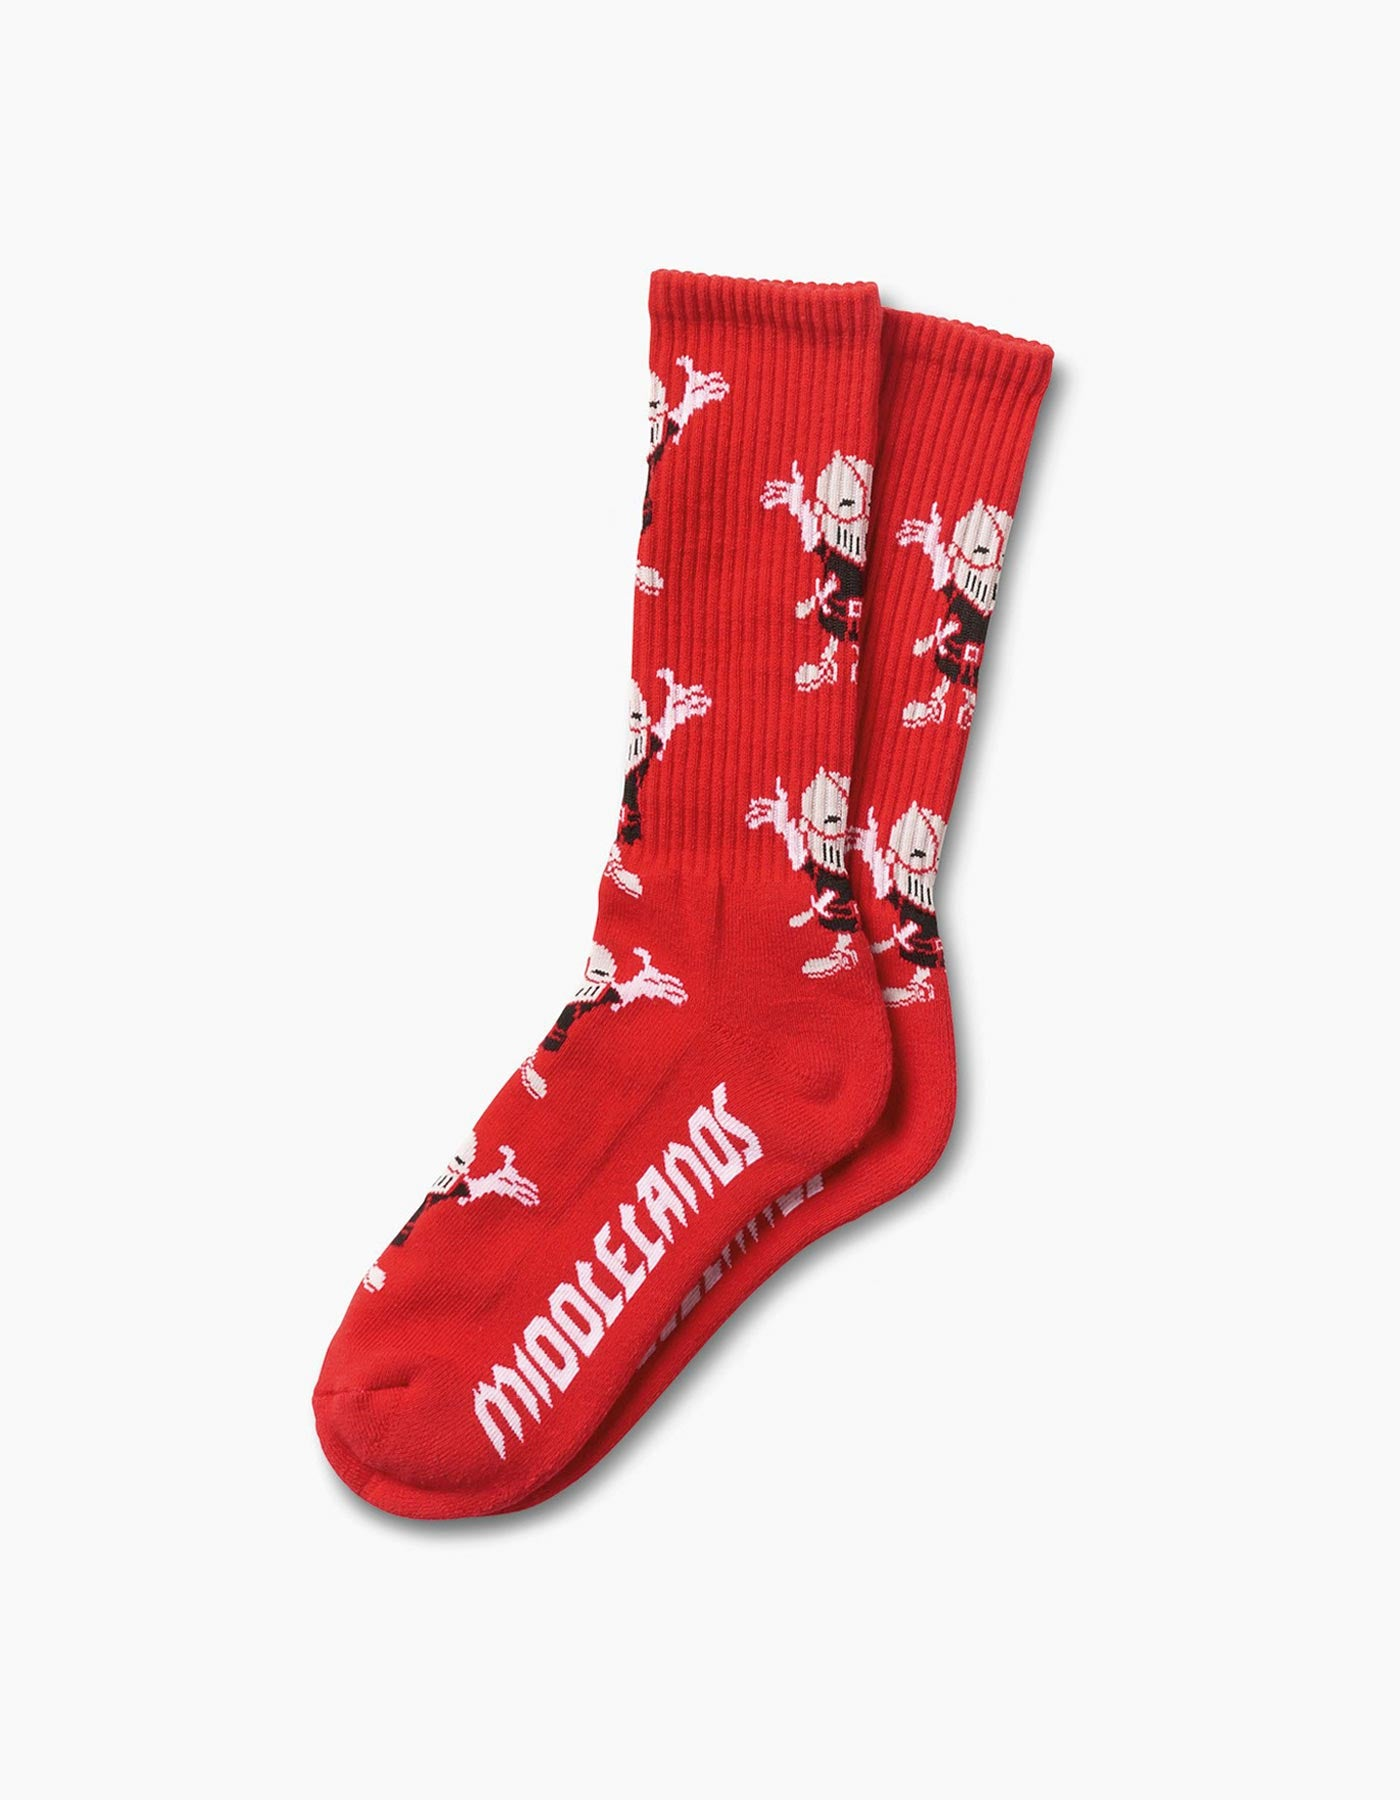 Tourguide Socks Red